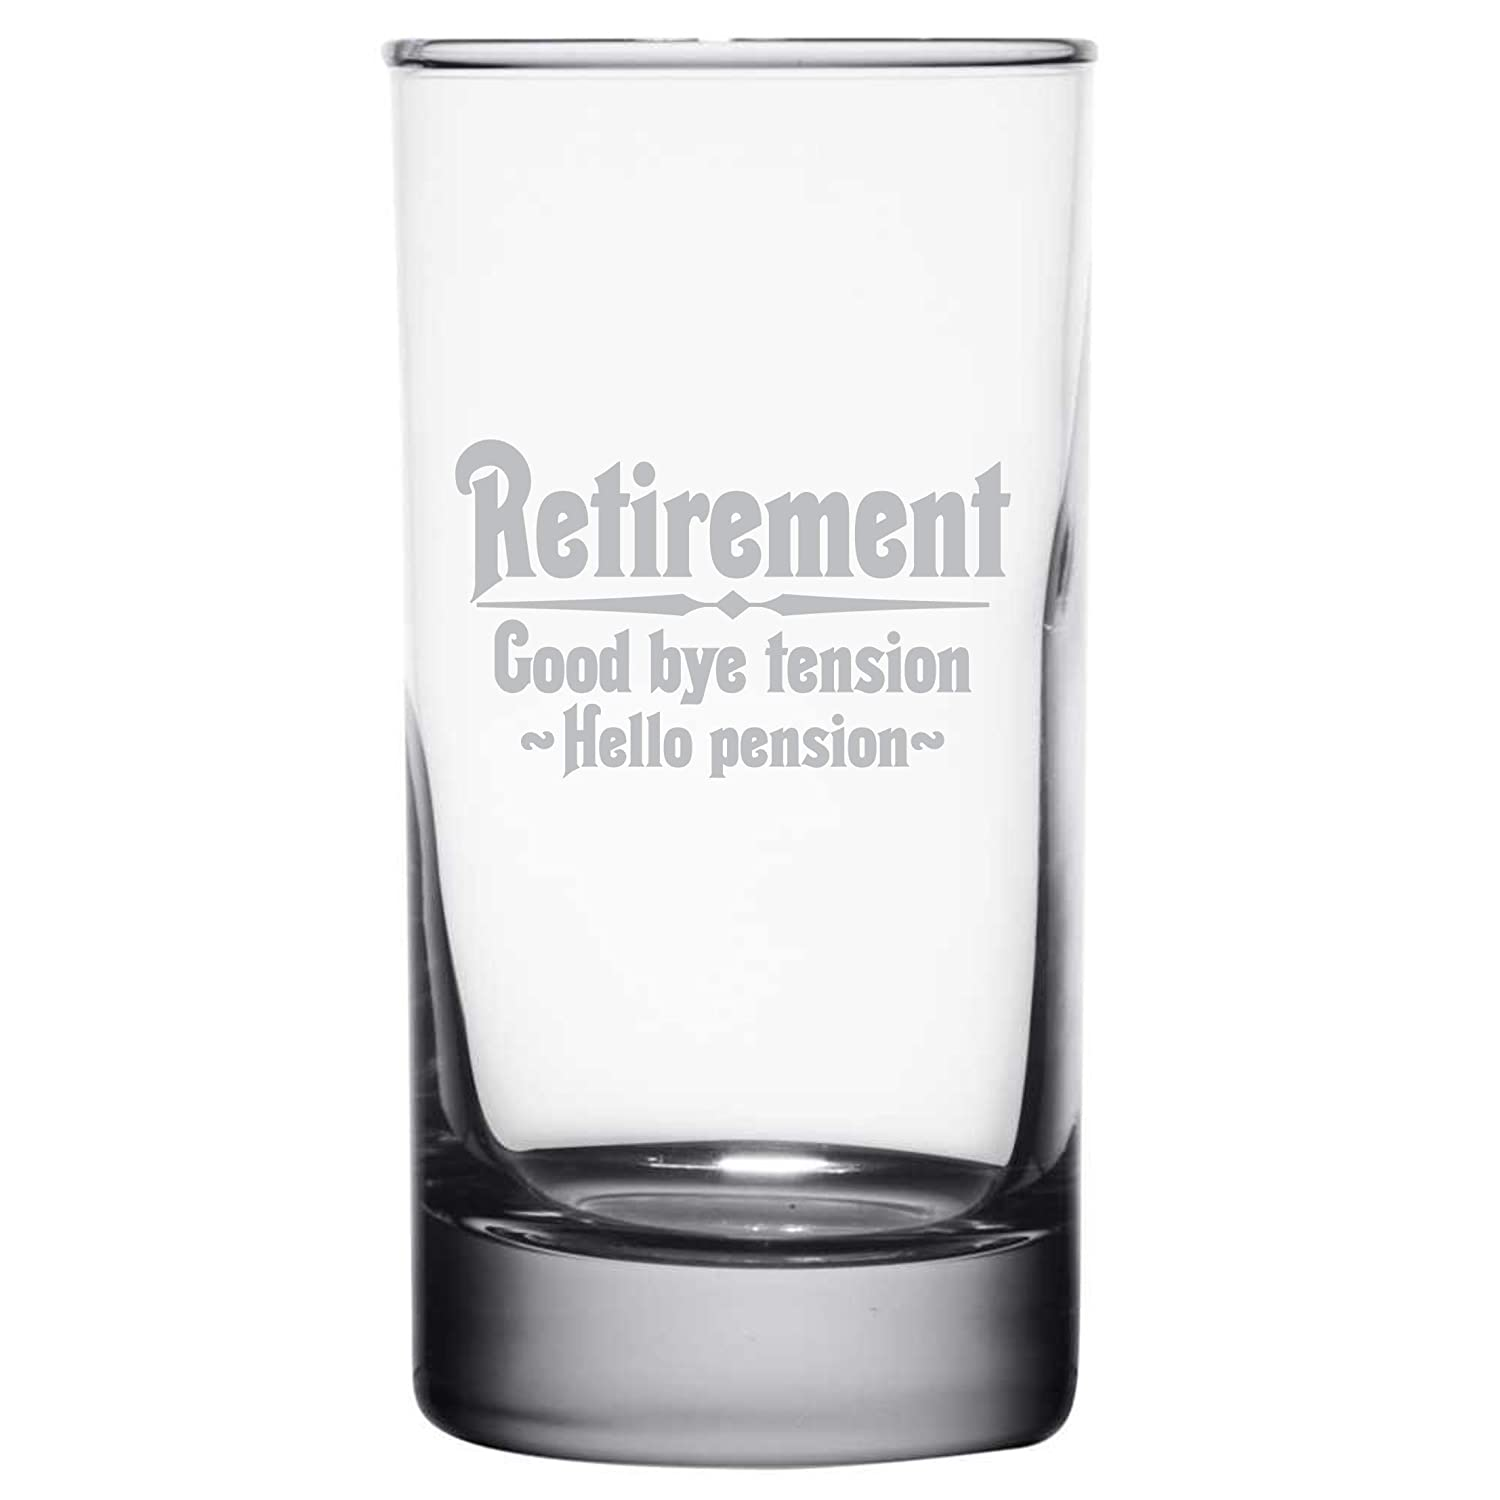 Retirement Gift Highball Rocks Glass for Men Goodbye Tension HBG16 Frederick Engraving Hello Pension Etched 9 oz Whiskey or Scotch Glass